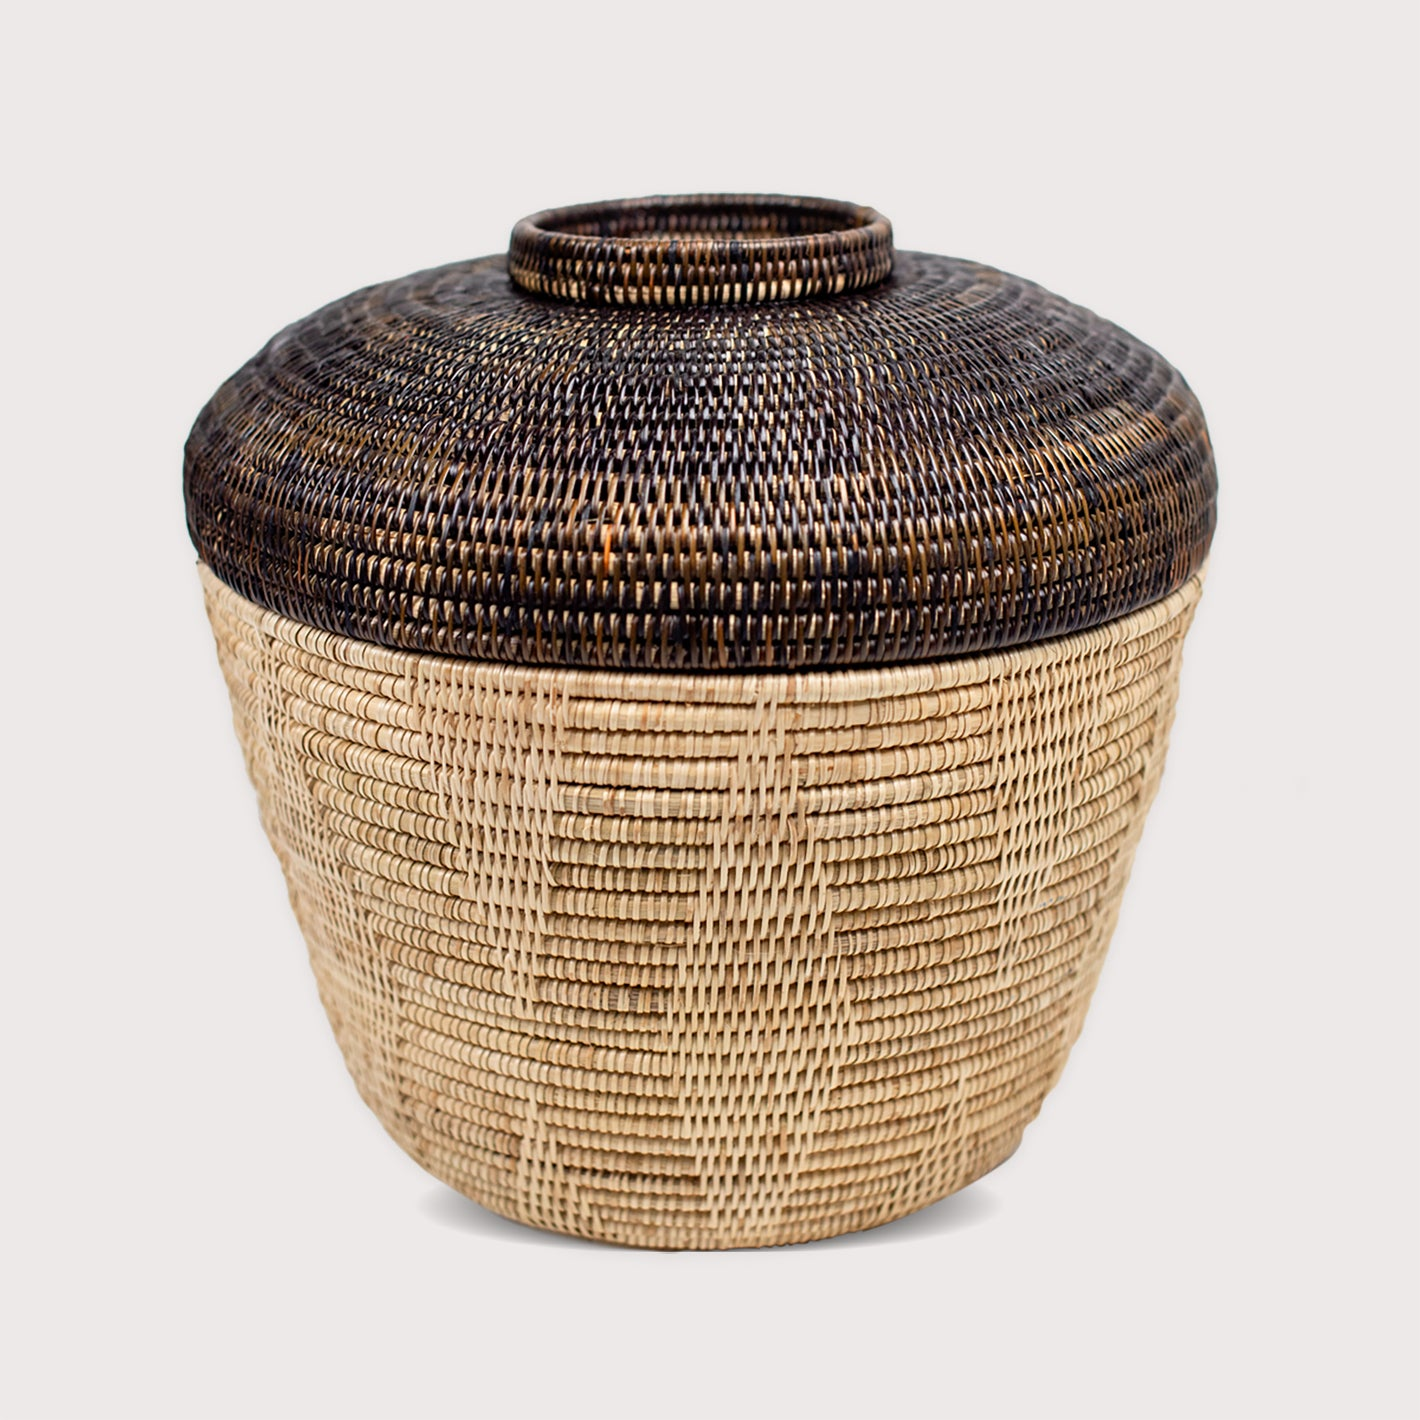 Chakachan basket Manava Basket - White Label Project